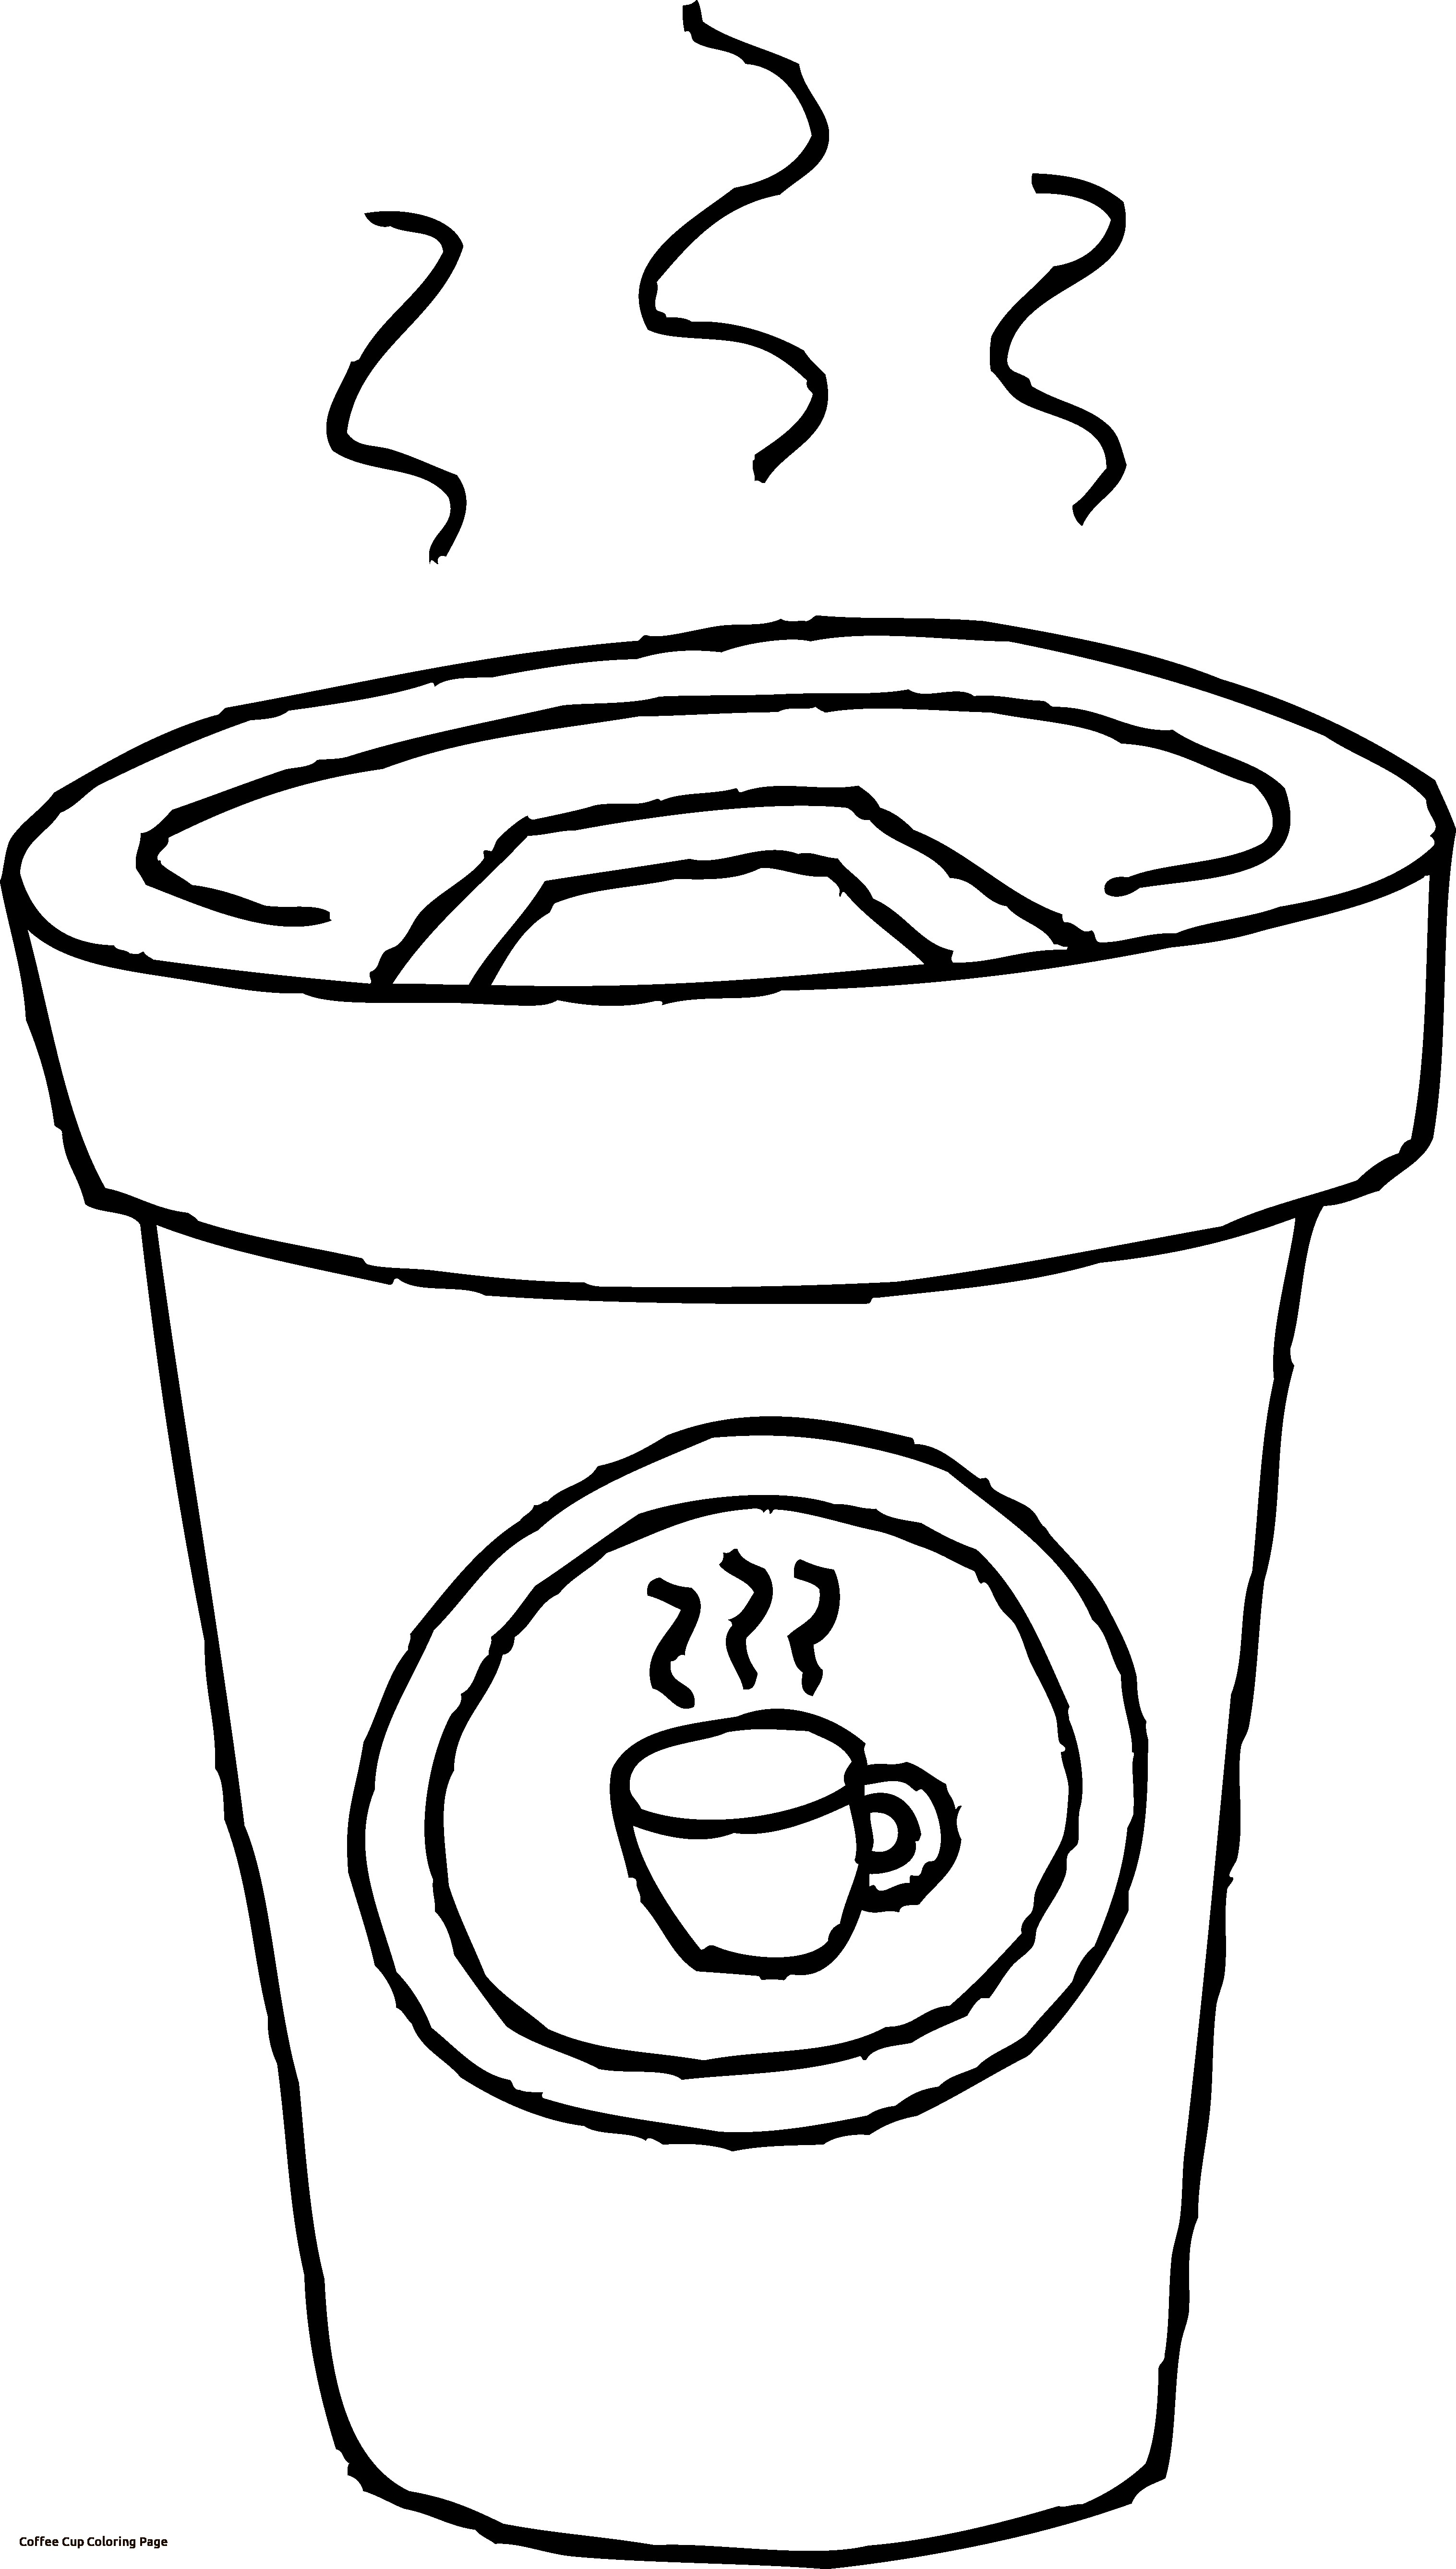 cup colouring pages clipart cup colouring page clipart cup colouring page pages colouring cup